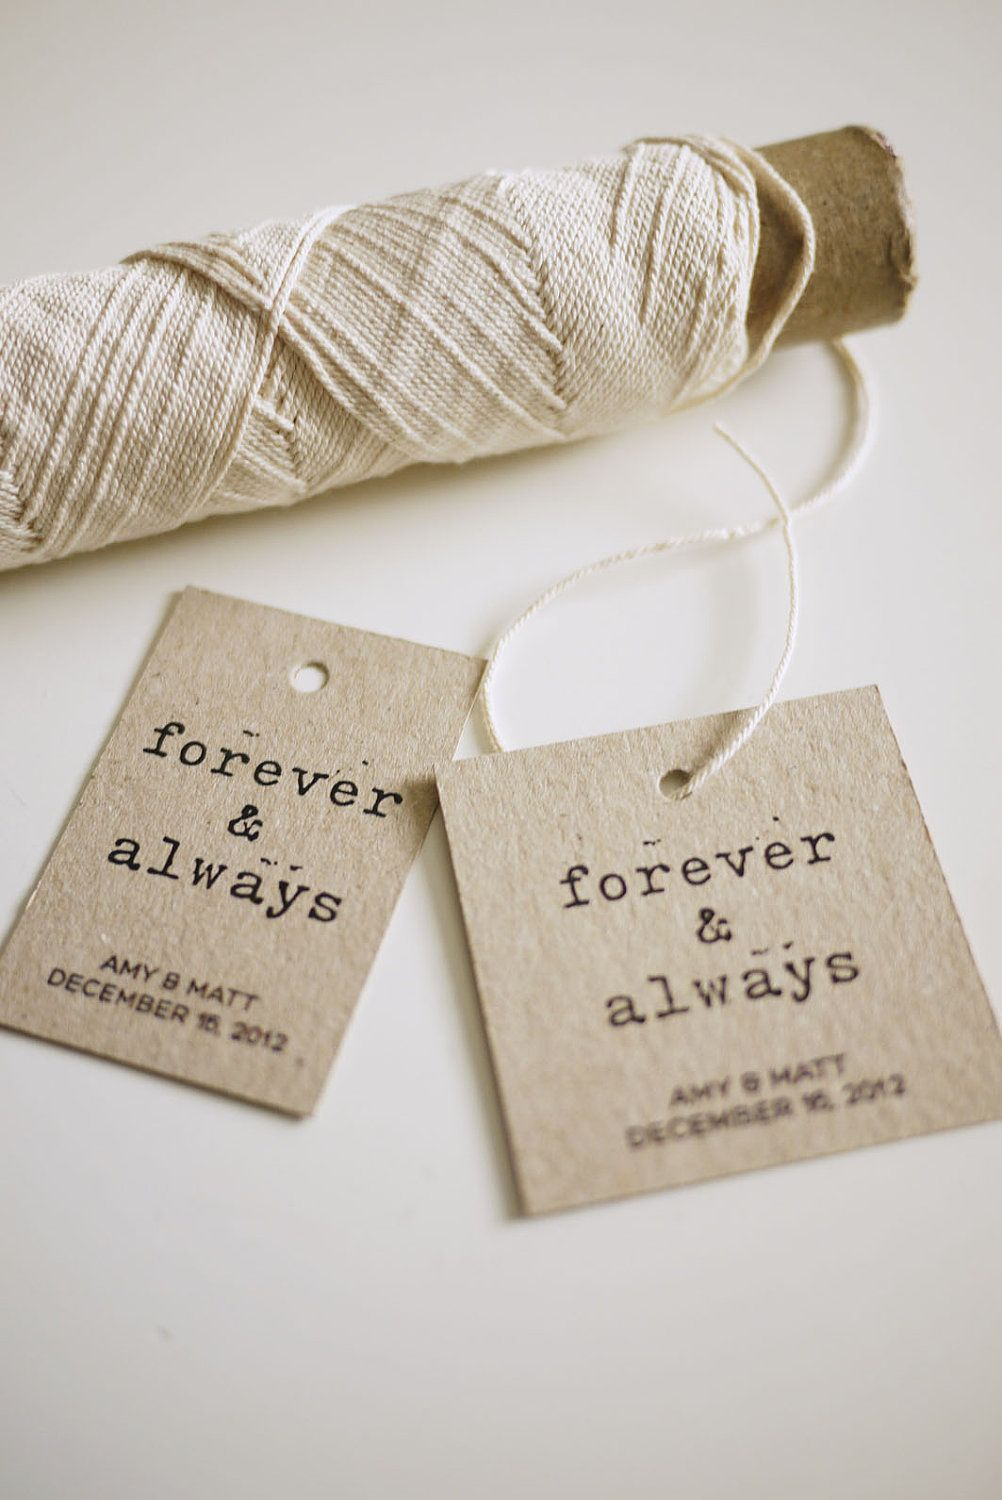 1000+ images about Templates on Pinterest | Love is sweet, Wedding ...